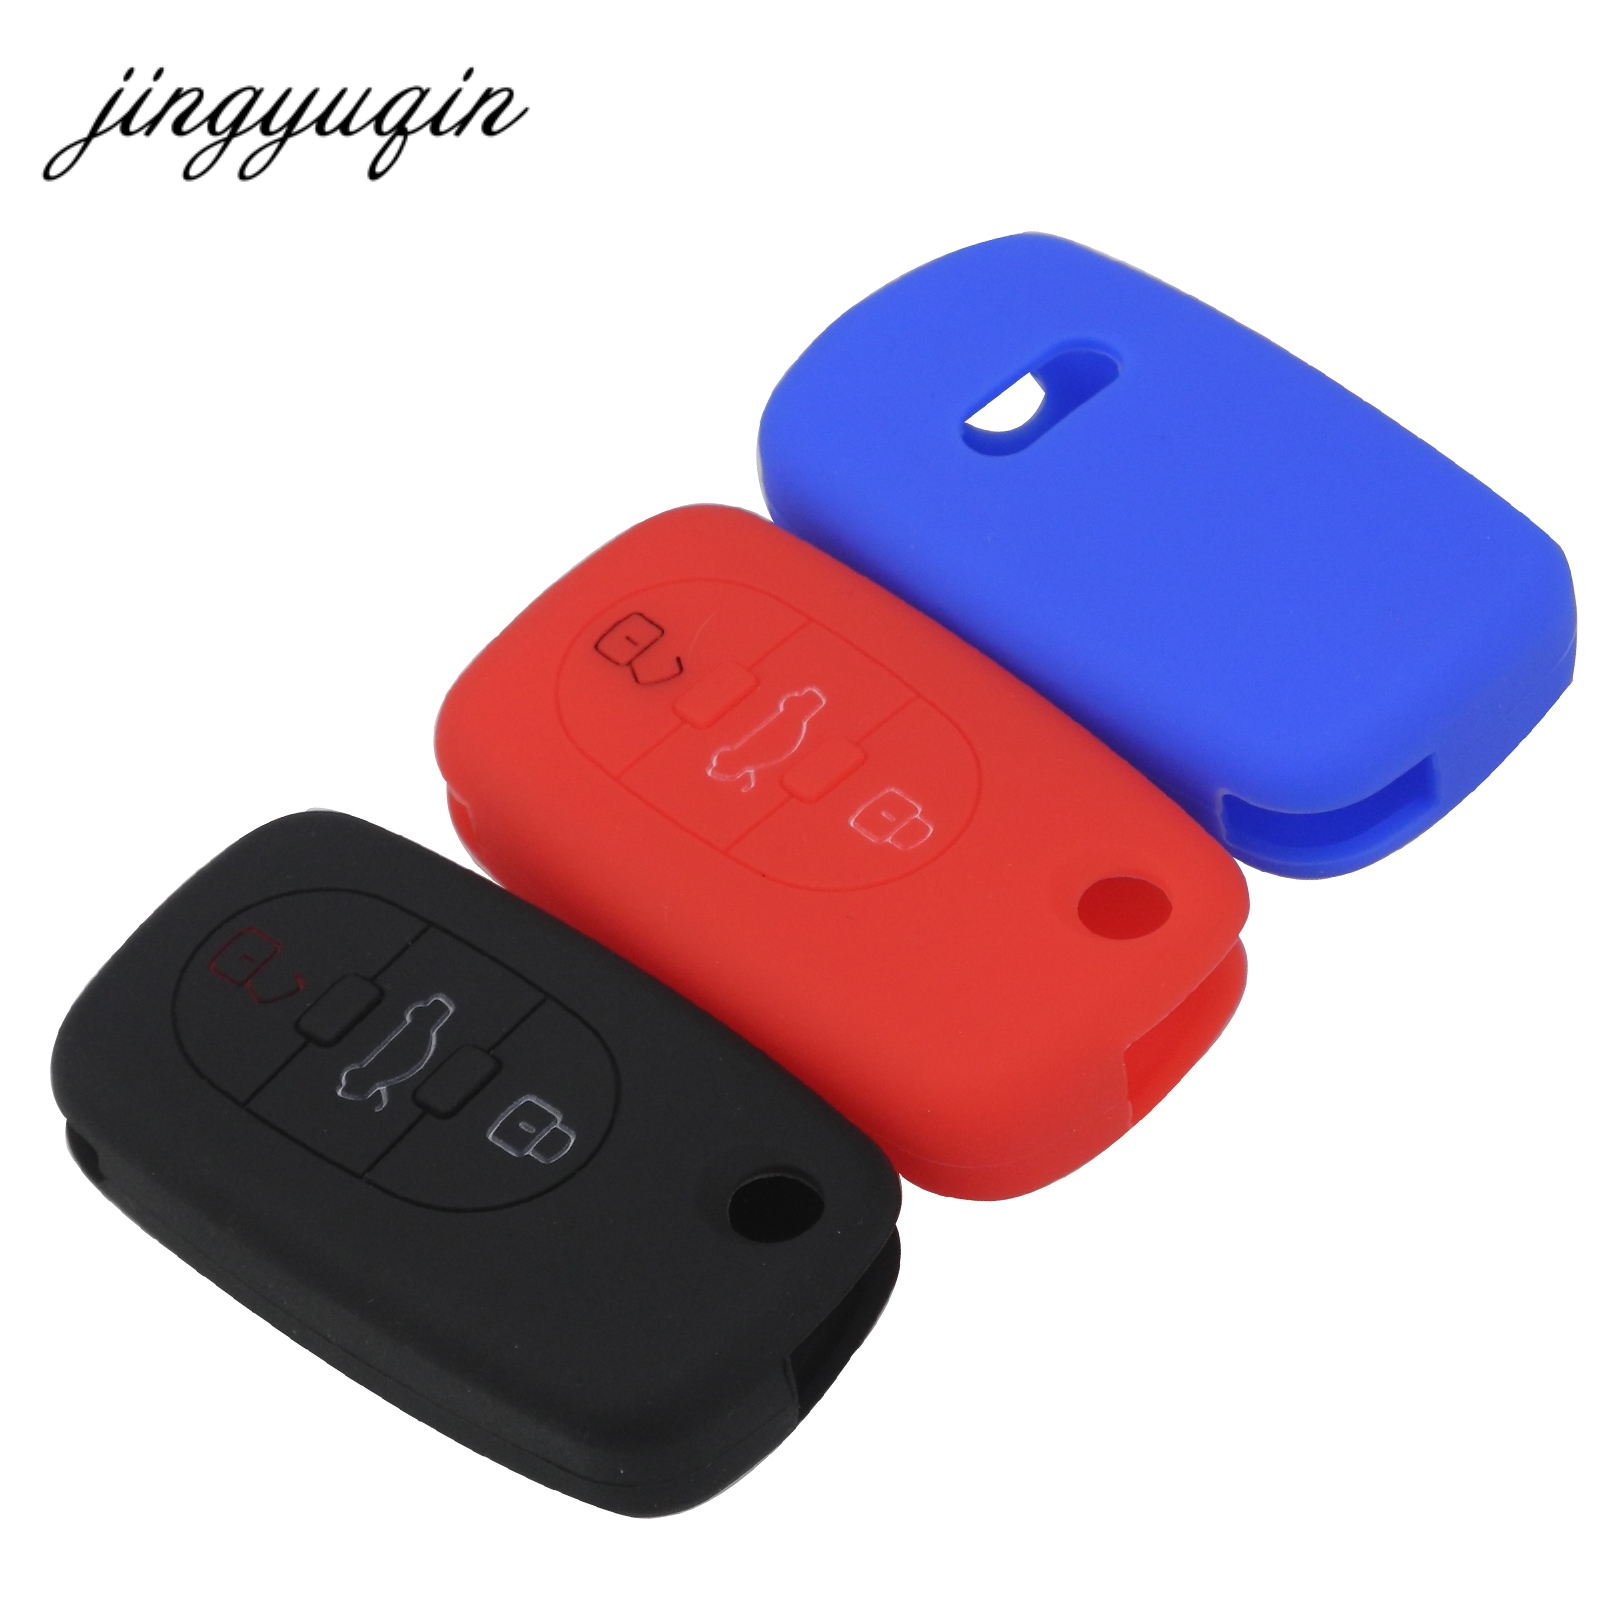 jingyuqin New Car Silicone Skin Key Case For Audi A3 A4 A6 A8 TT 3 Button Flip Folding Remote Key Shell Cover Protect Holder цена и фото